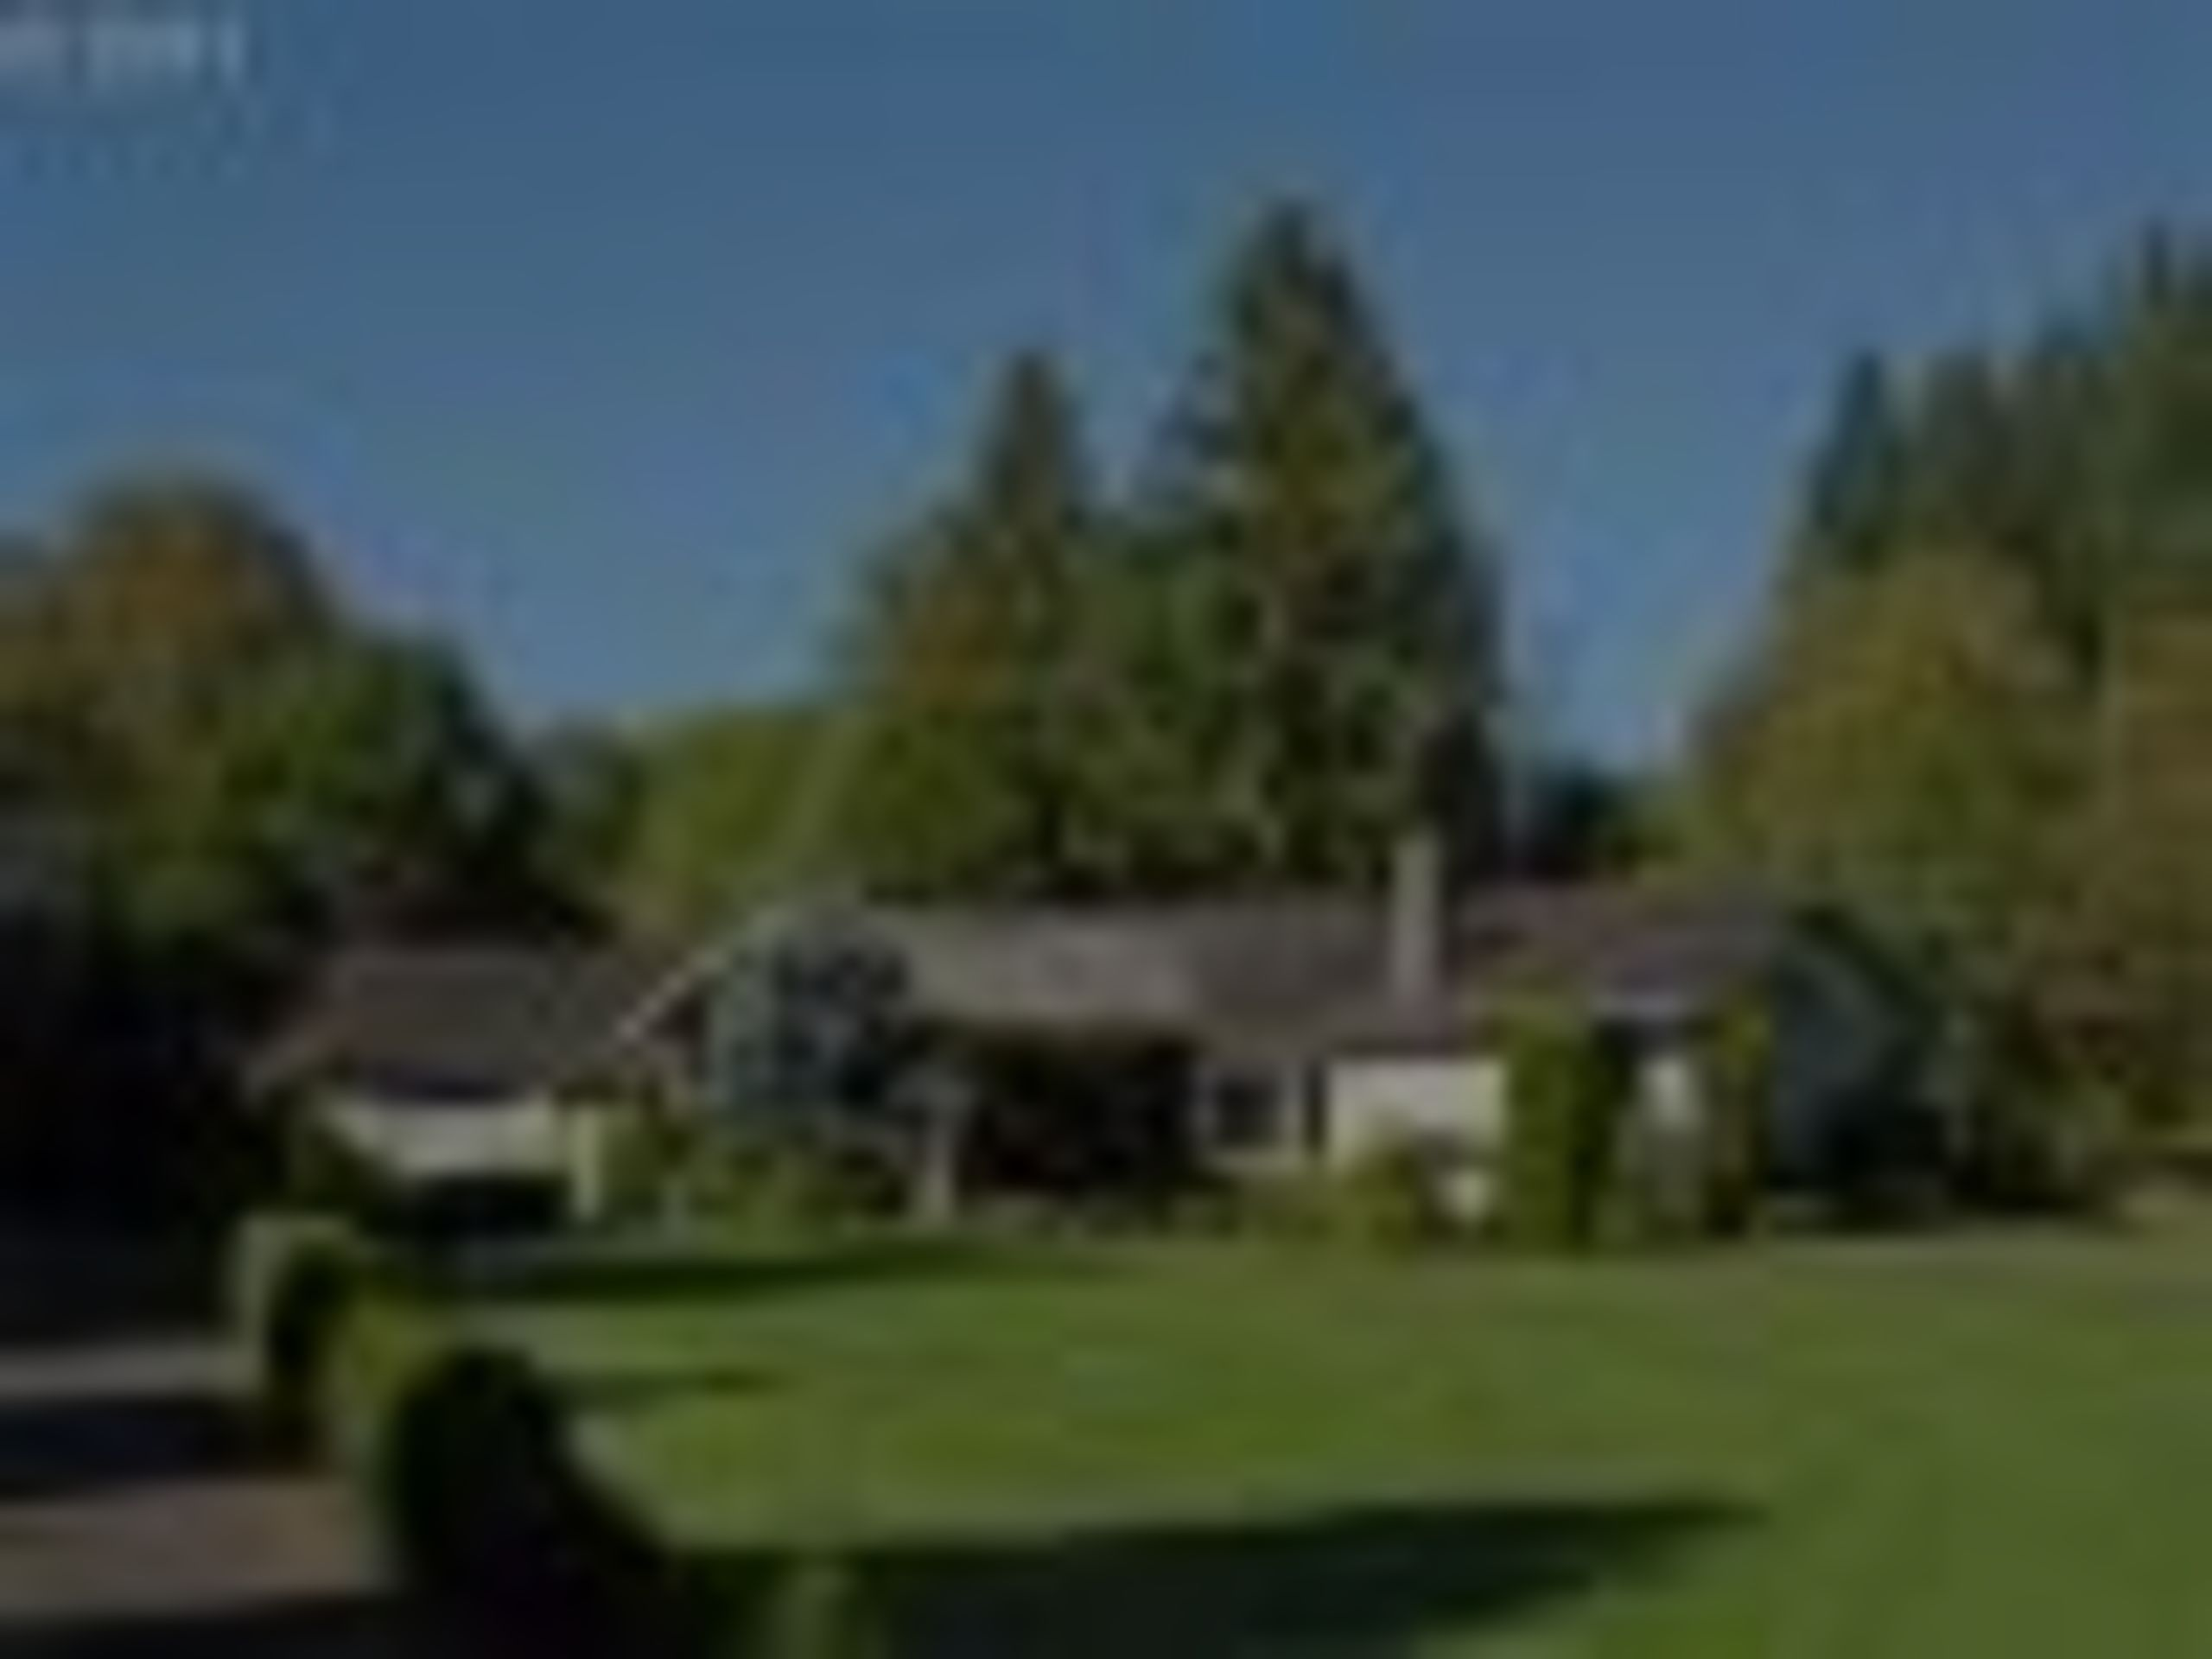 89144 BRIDGE ST, SPRINGFIELD, OREGON